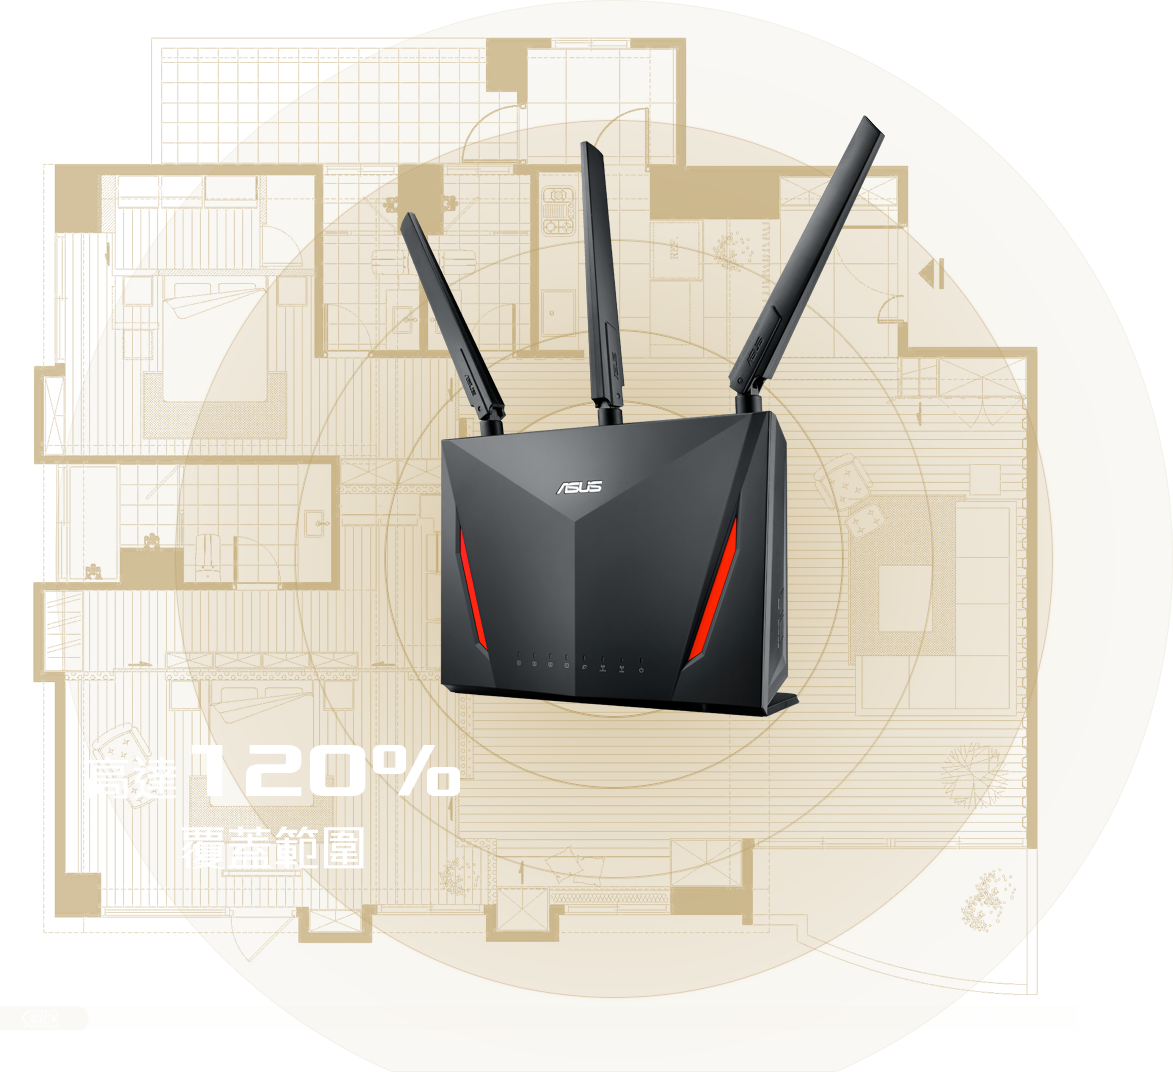 ASUS RT-AC86U router features RangeBoost increasing up to 120% Wi-Fi signal coverage.